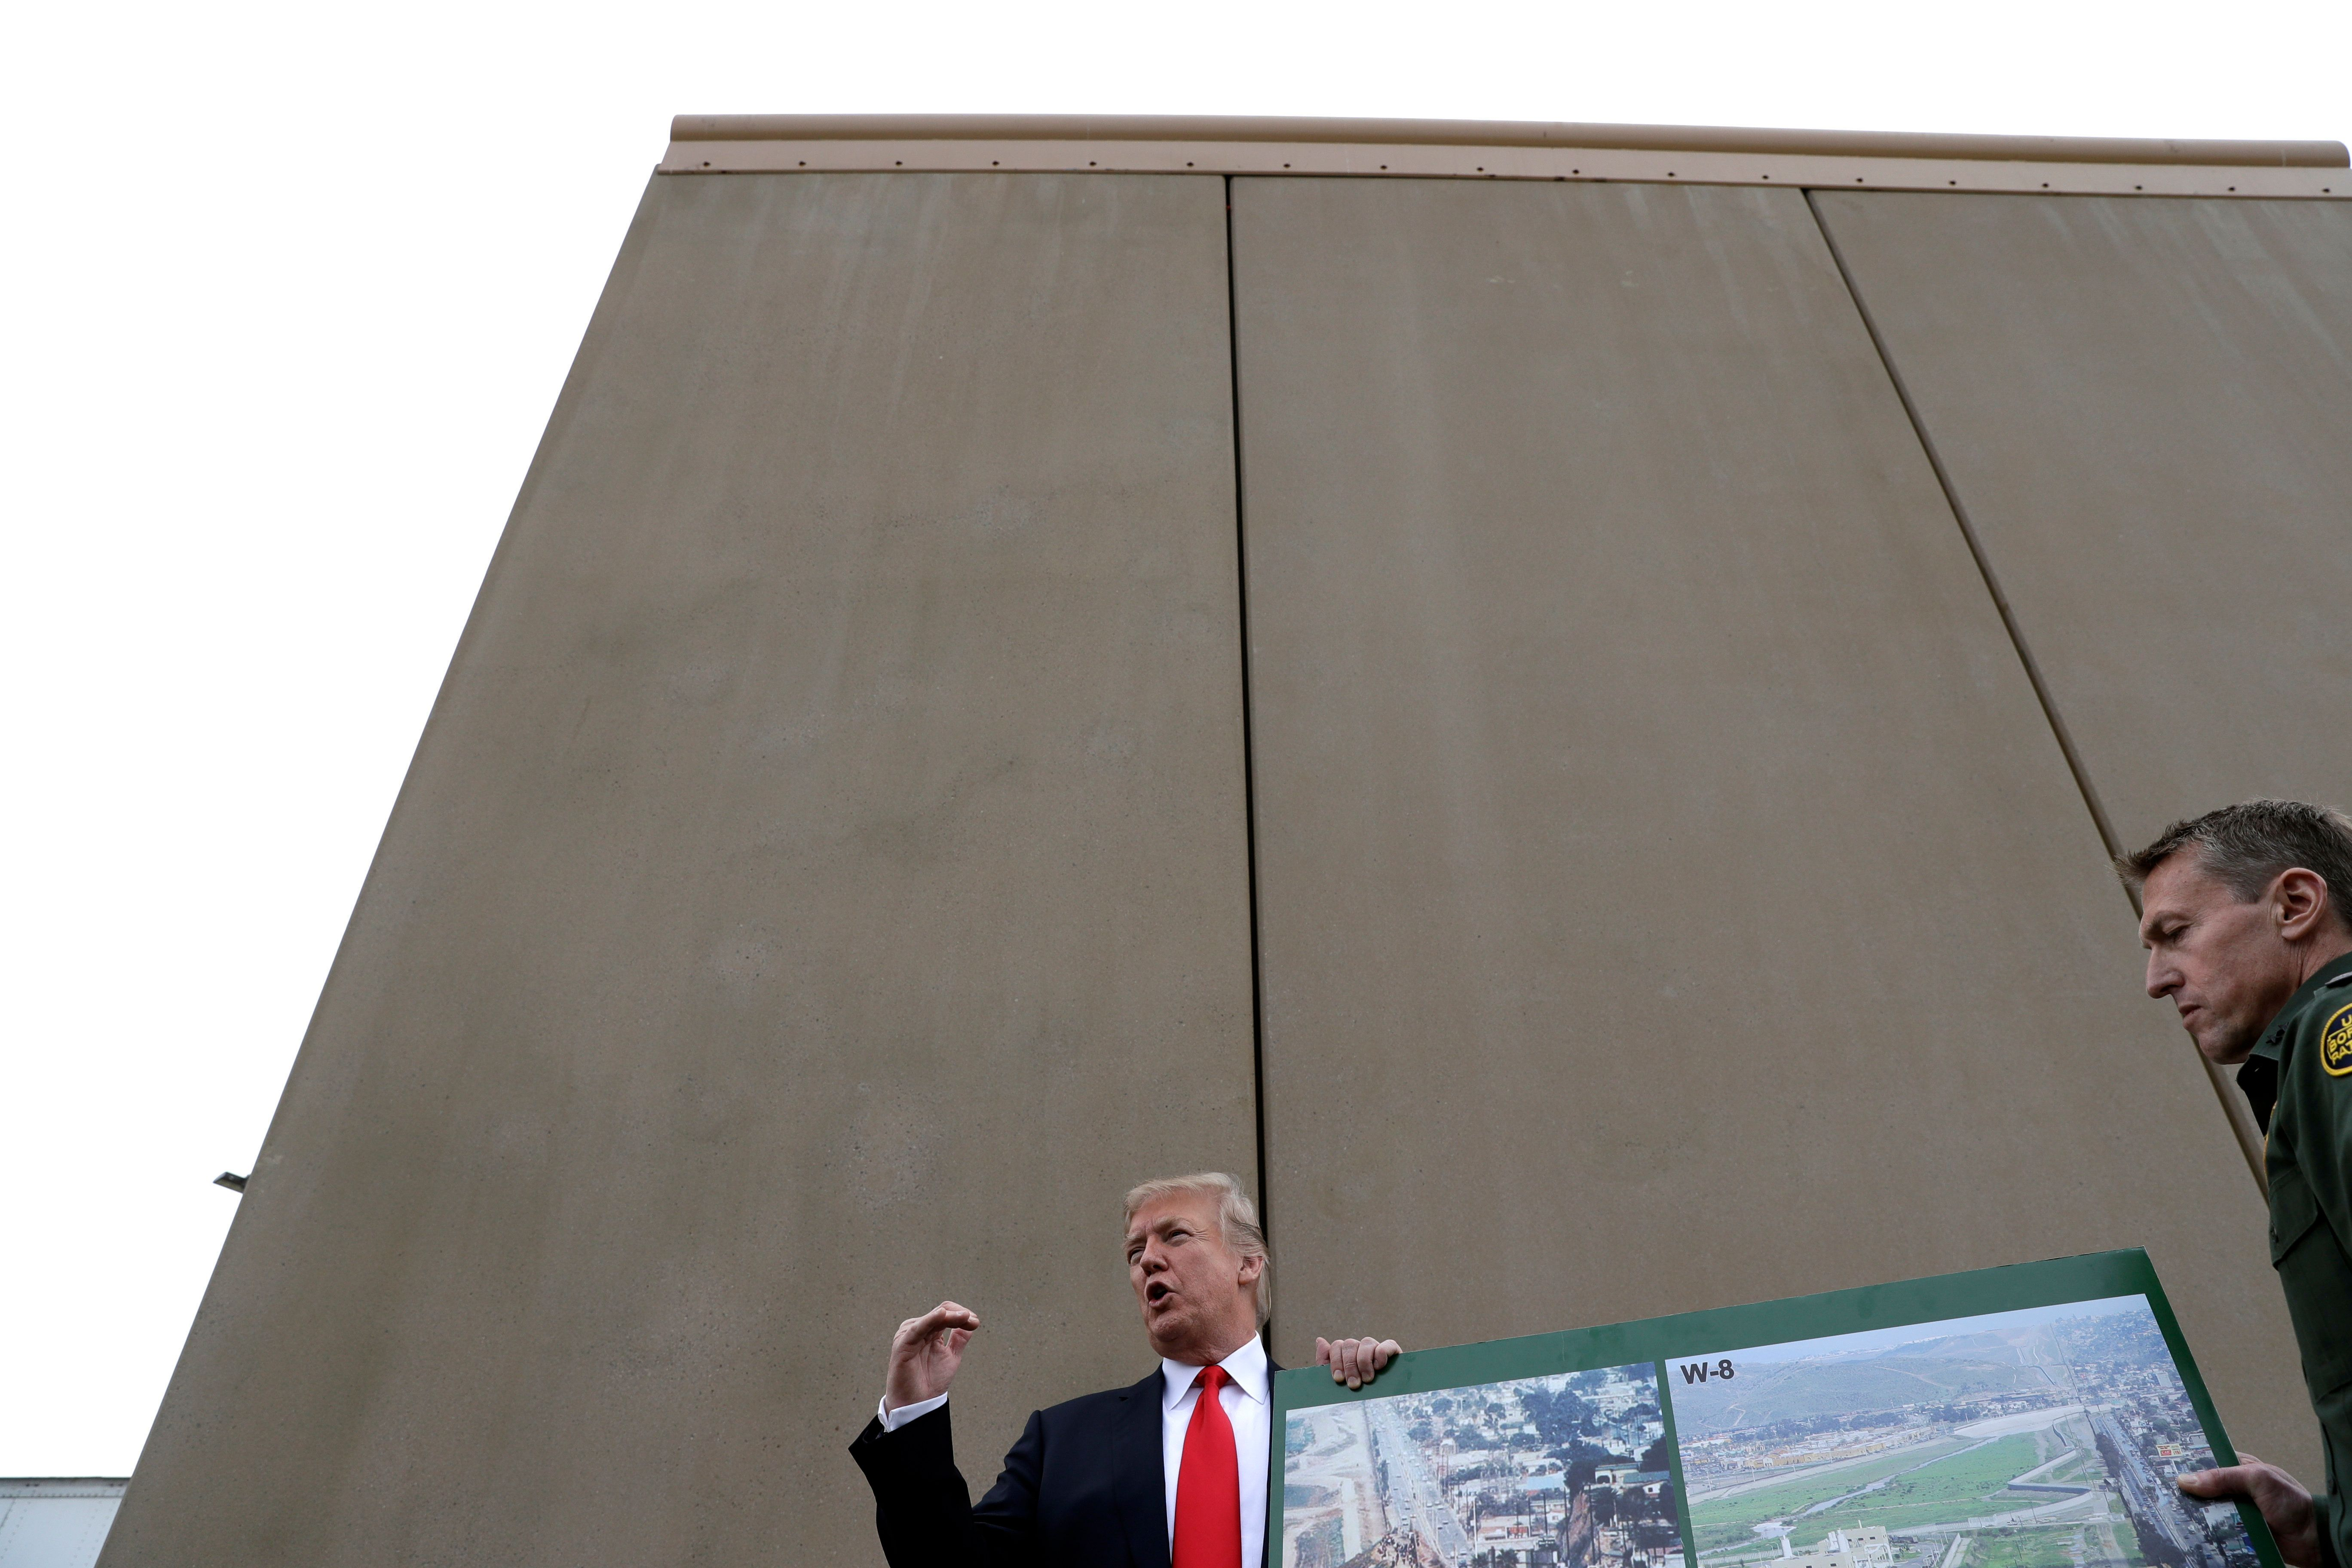 President Donald Trump speaks during a tour as he reviews border wall prototypes, Tuesday, March 13, 2018, in San Diego, as Rodney Scott, the Border Patrol's San Diego sector chief, listens at right. (AP Photo/Evan Vucci)